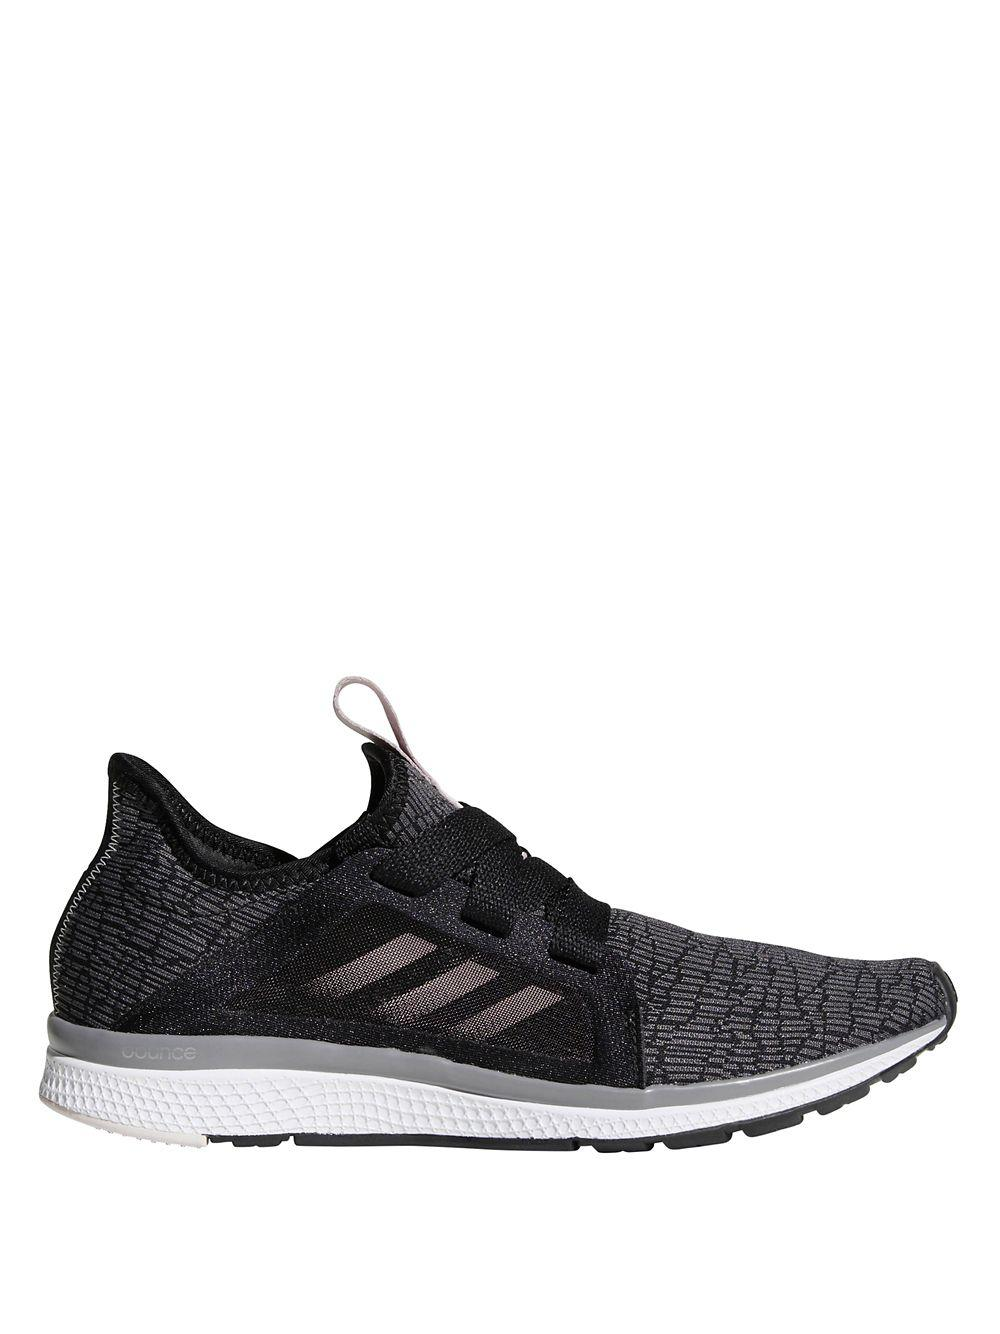 brand new a45fe d0c9d adidas. Womens Black Edge Lux Running Trainers